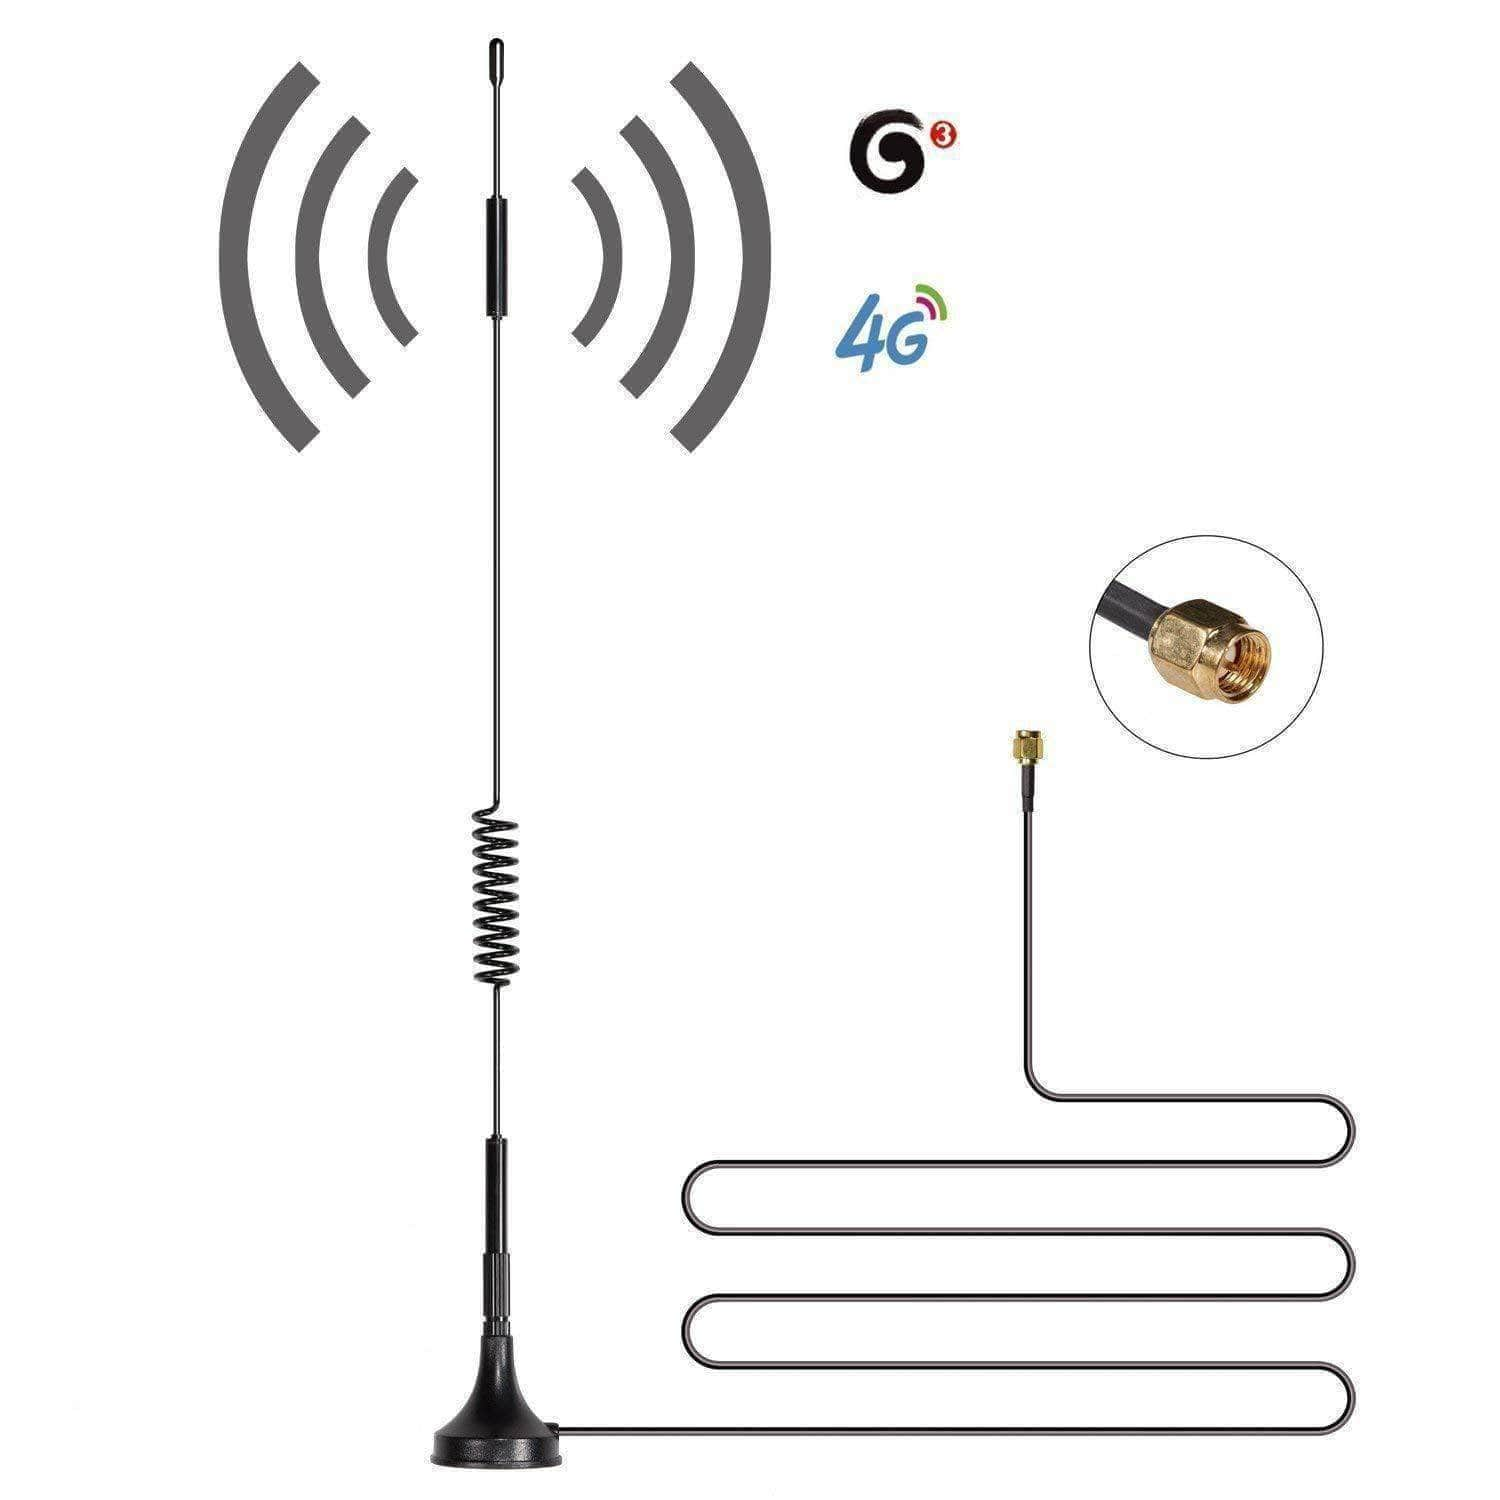 4G LTE Omni Magnet Antenna 8dBi 700 MHz(B28) SMA Male 2m LMR200 Cable